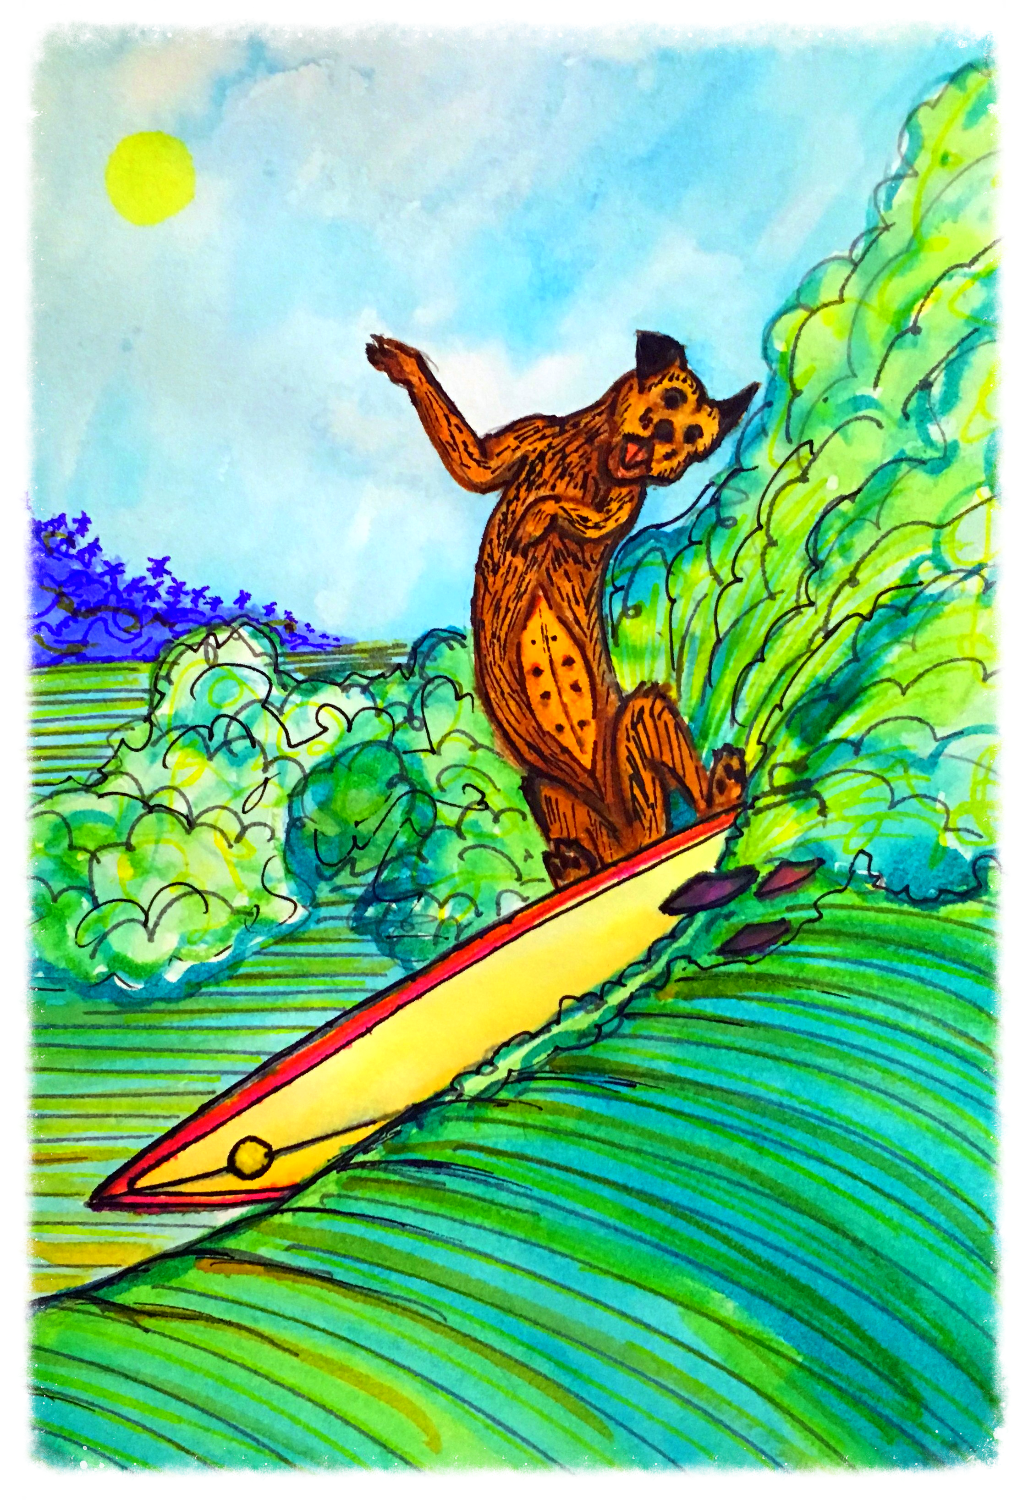 Surf Art by Brent February #29